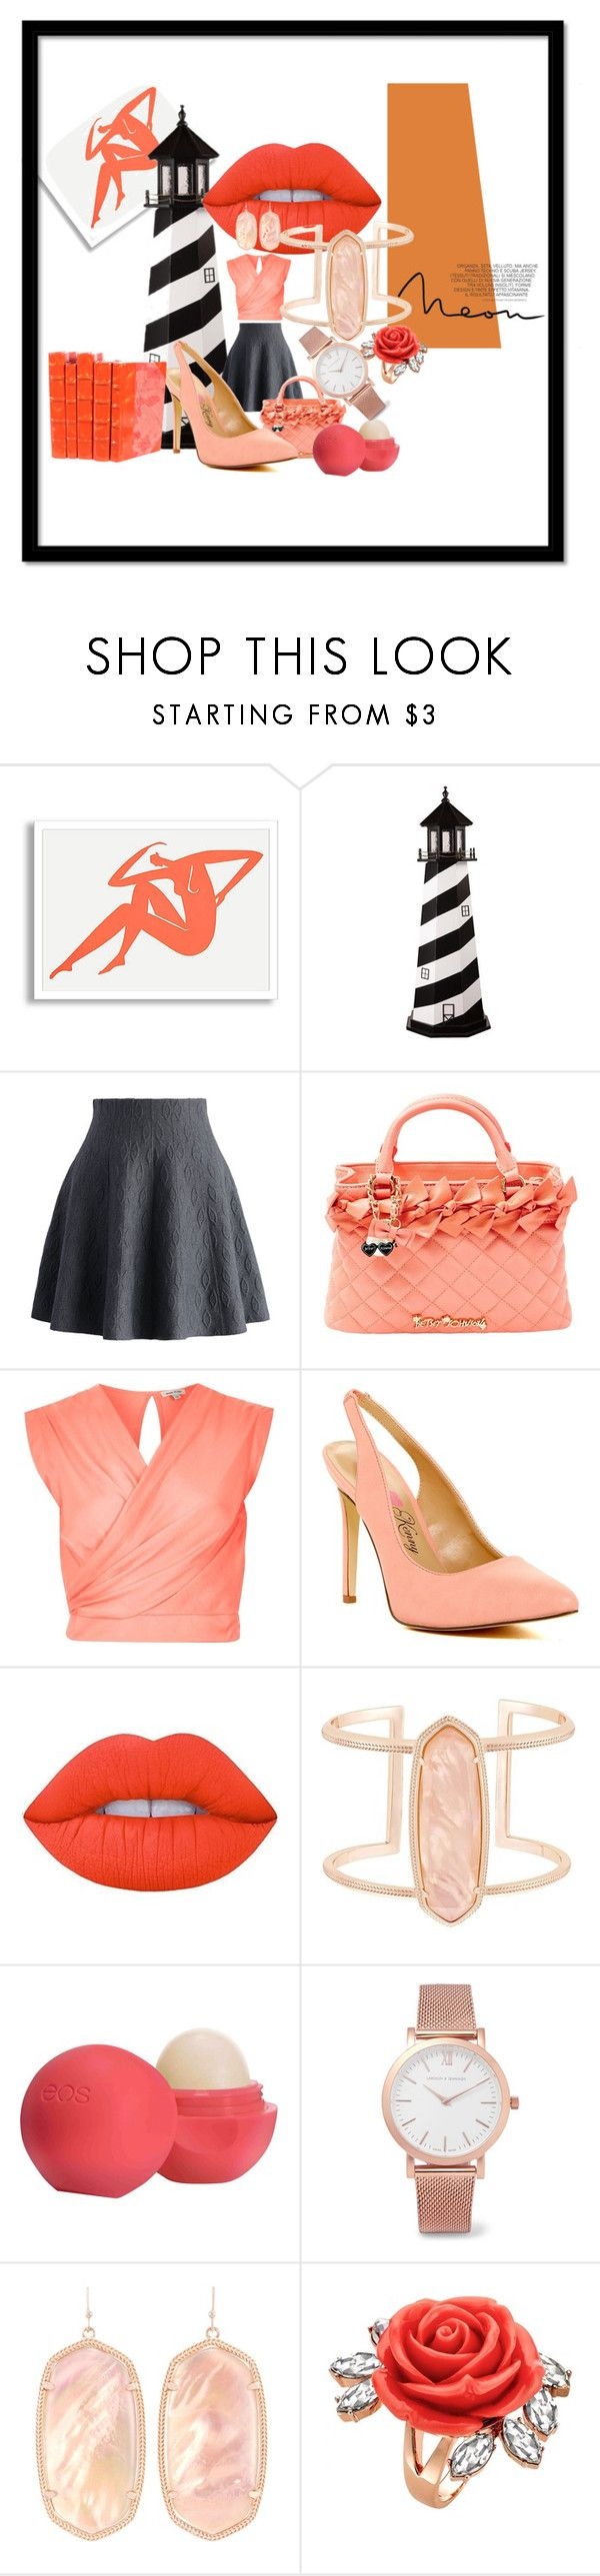 """Everything's Peachy"" by tonifowler1966 ❤ liked on Polyvore featuring DutchCrafters, Chicwish, Betsey Johnson, River Island, Penny Loves Kenny, Lime Crime, Kendra Scott, Eos, Larsson & Jennings and Mawi"